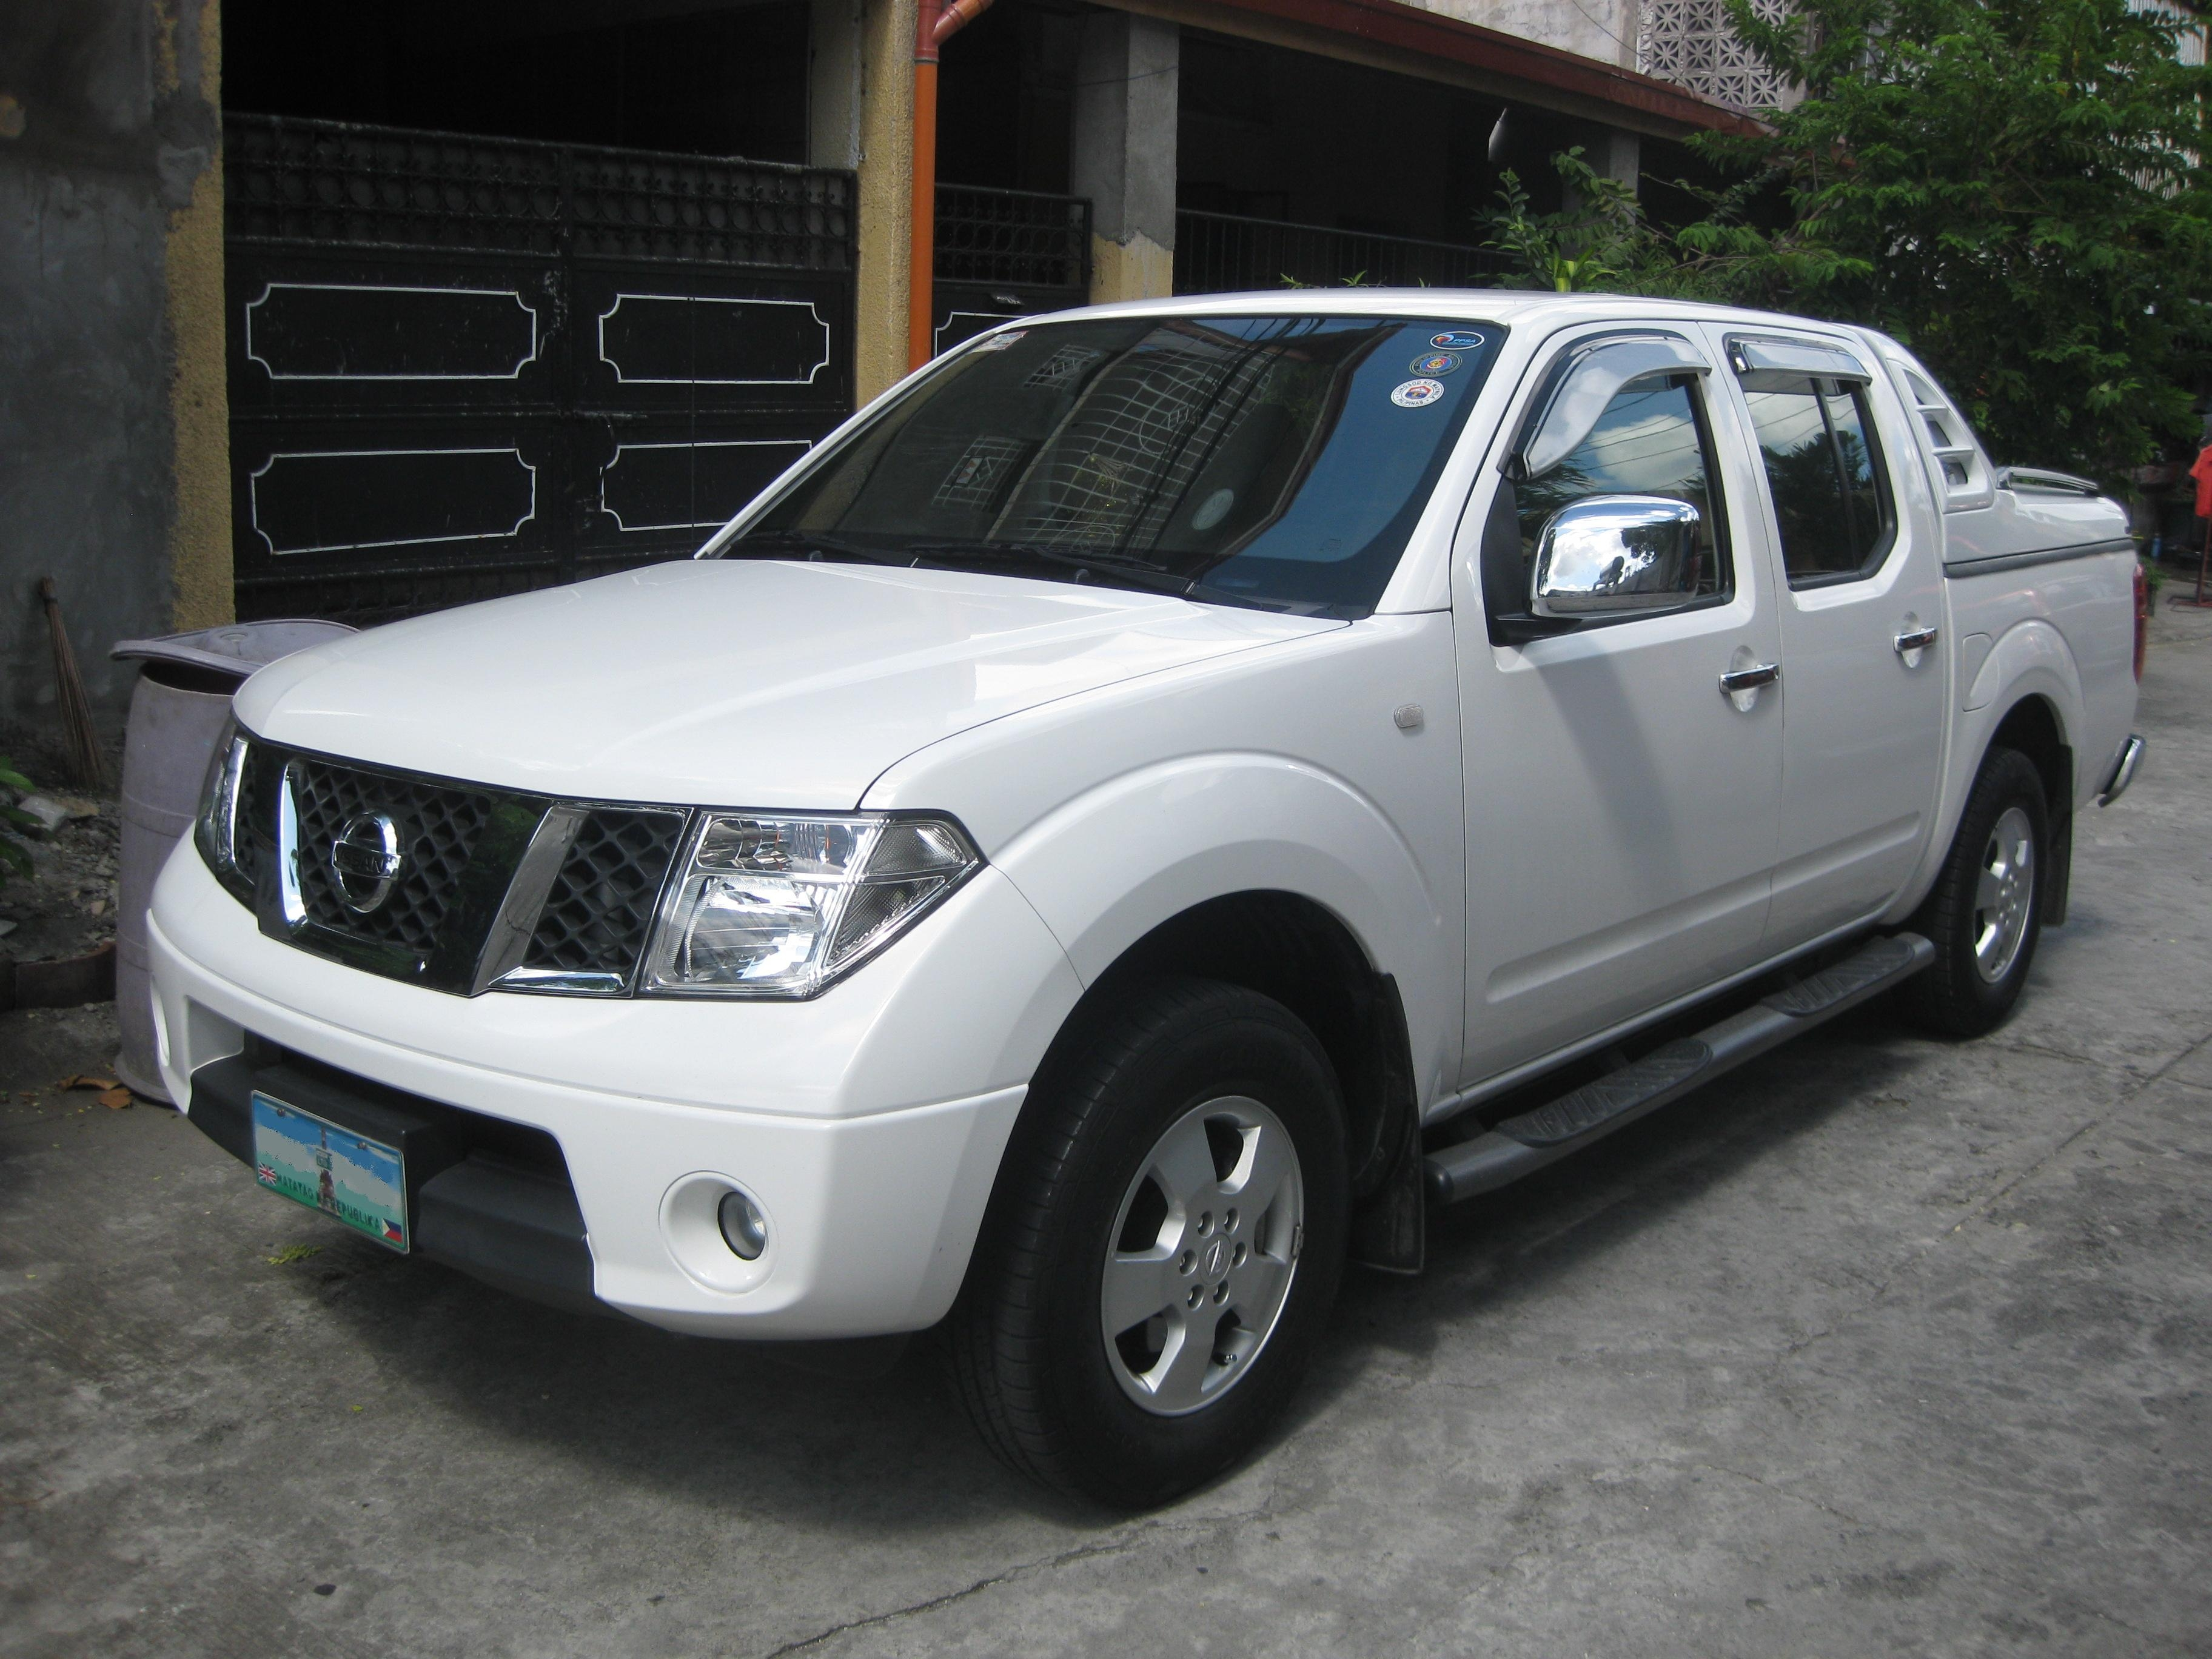 bakerstreet 2010 nissan frontier regular cab specs photos modification info at cardomain. Black Bedroom Furniture Sets. Home Design Ideas